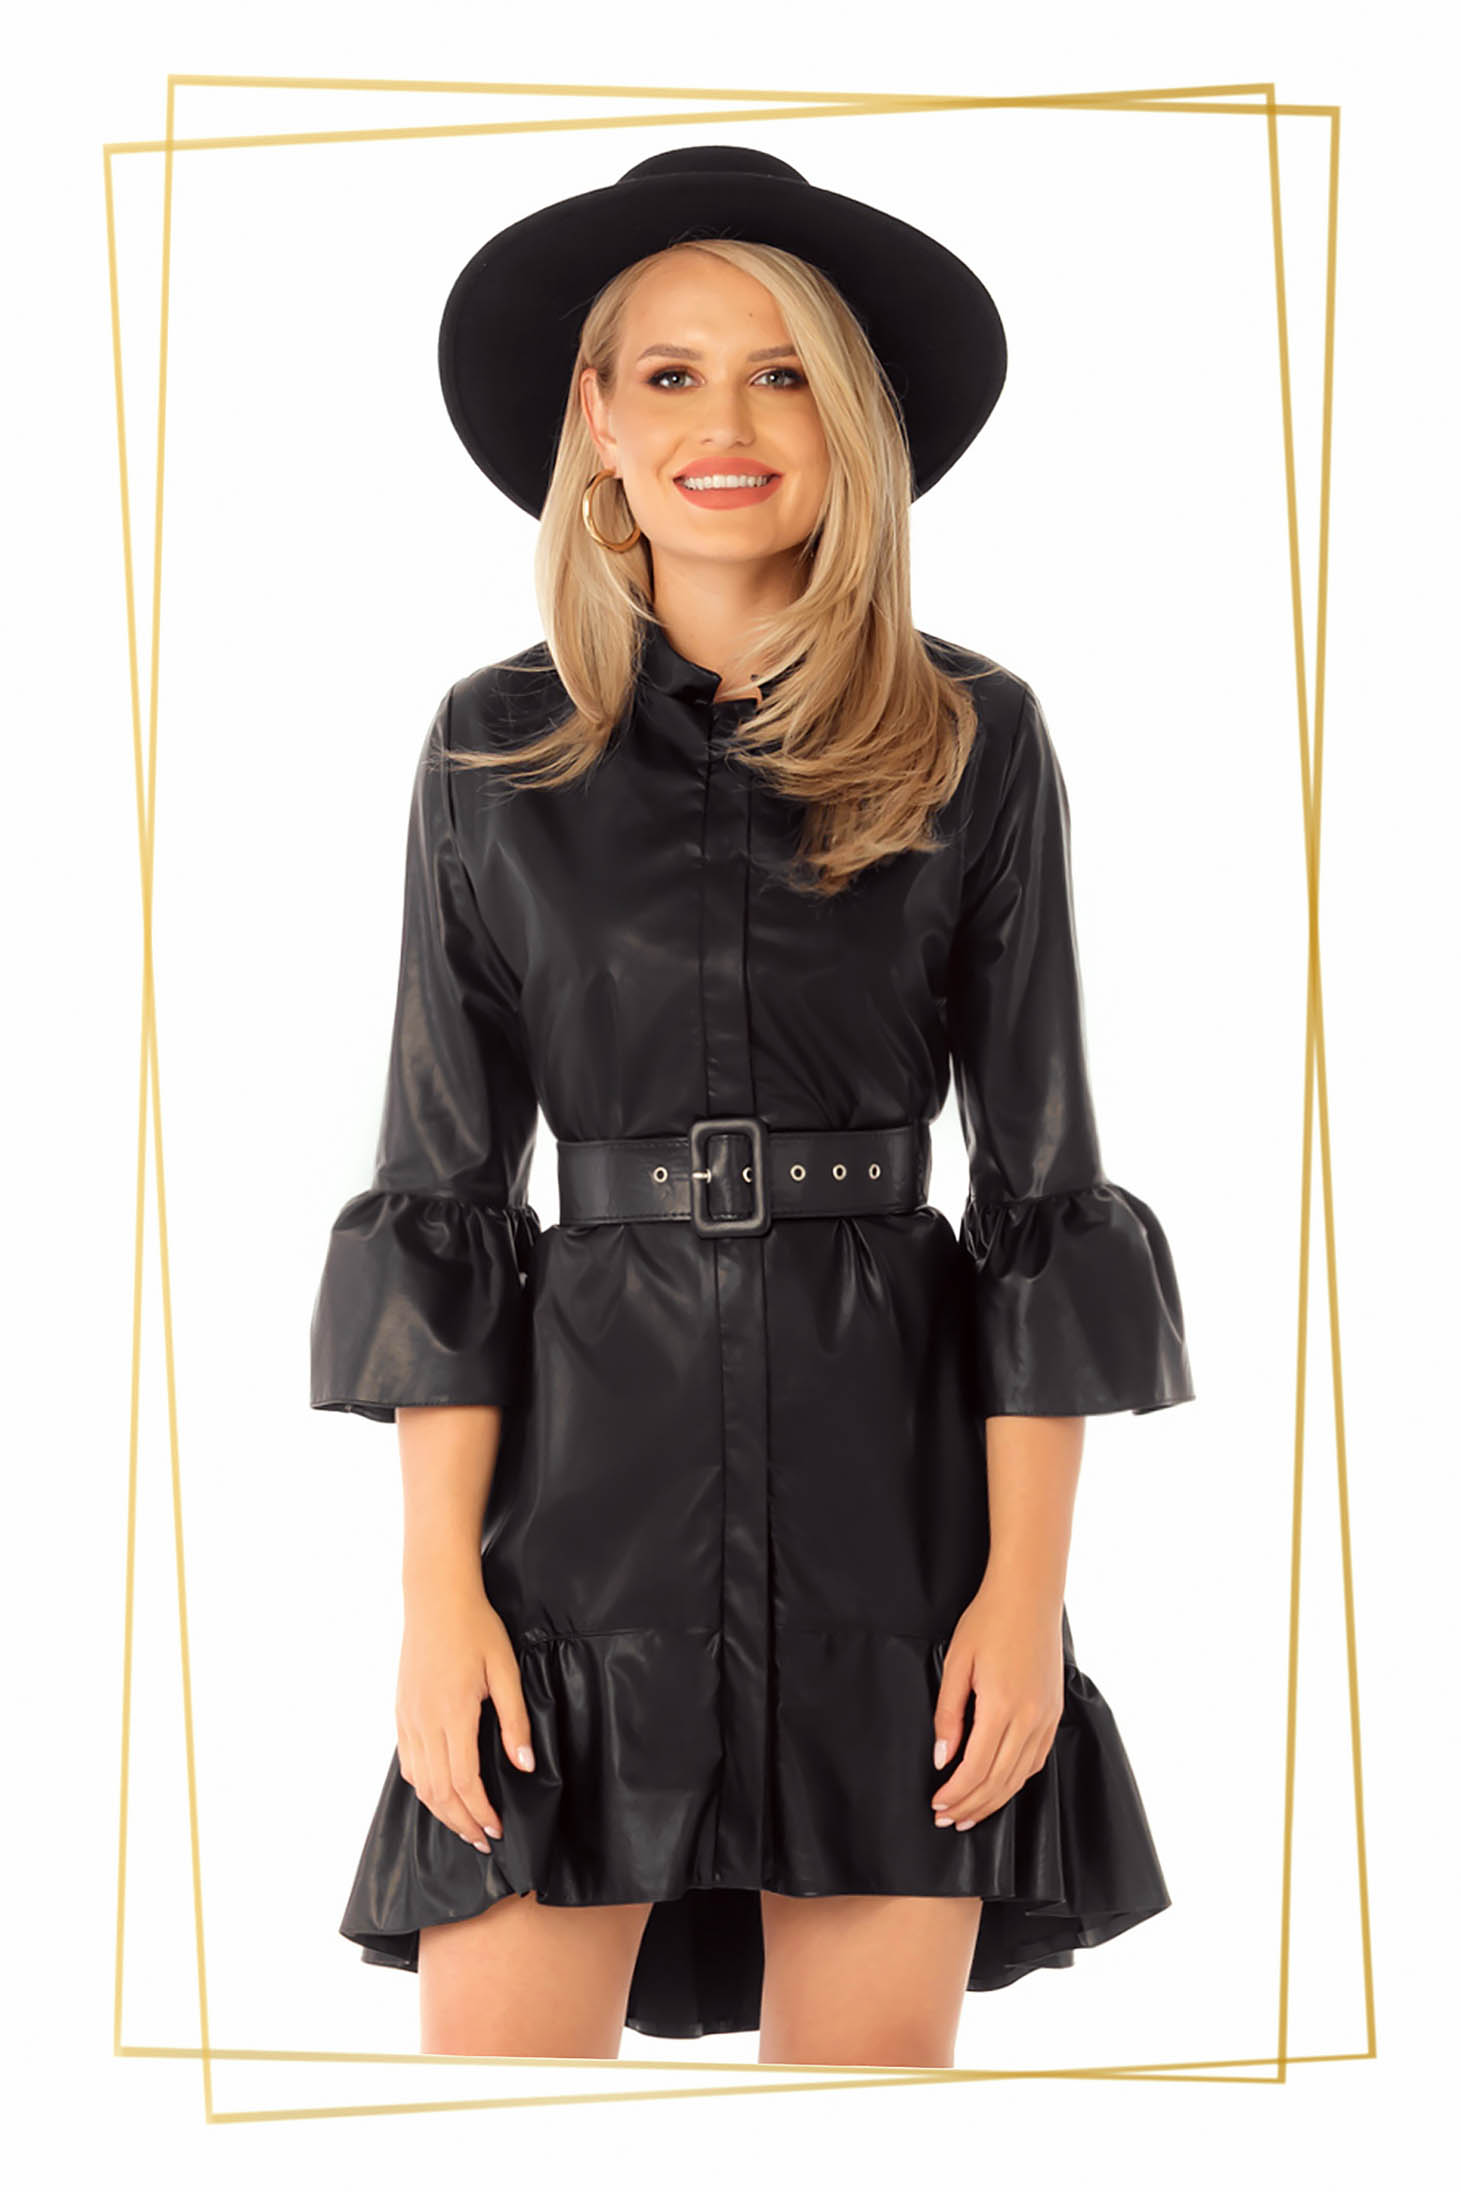 Dress asymmetrical flaring cut black with bell sleeve with ruffles at the buttom of the dress